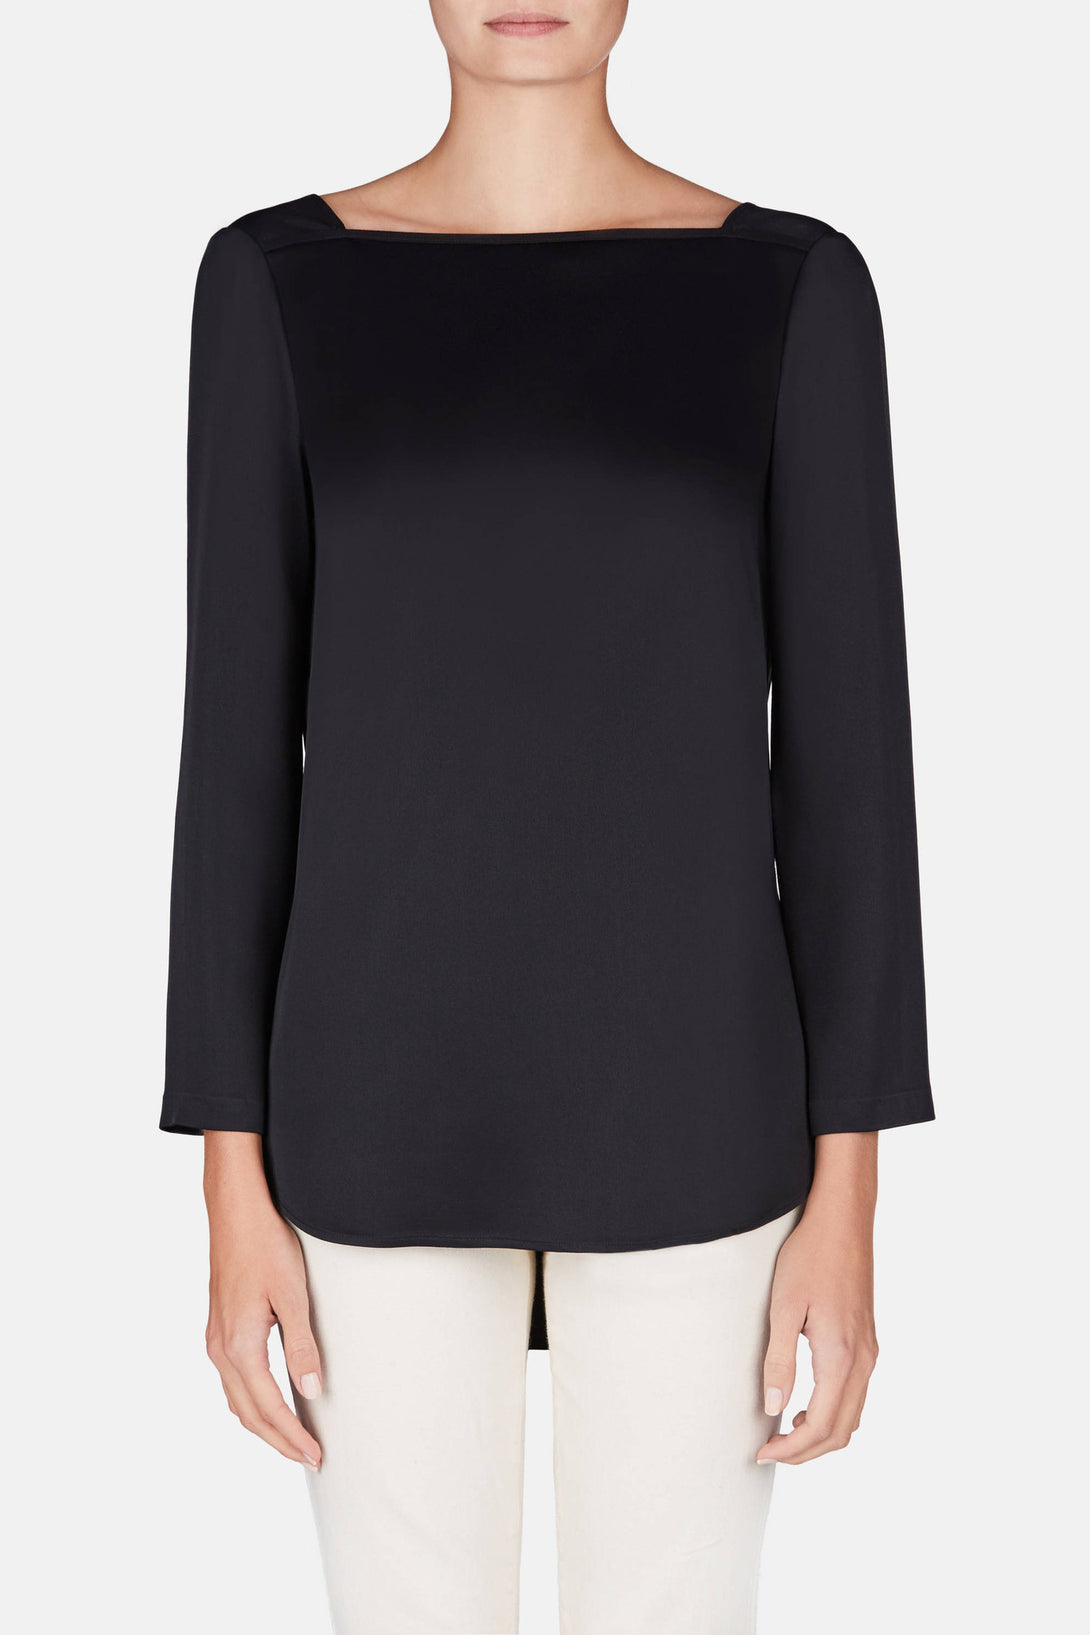 Cicily Square Neck Top - Black